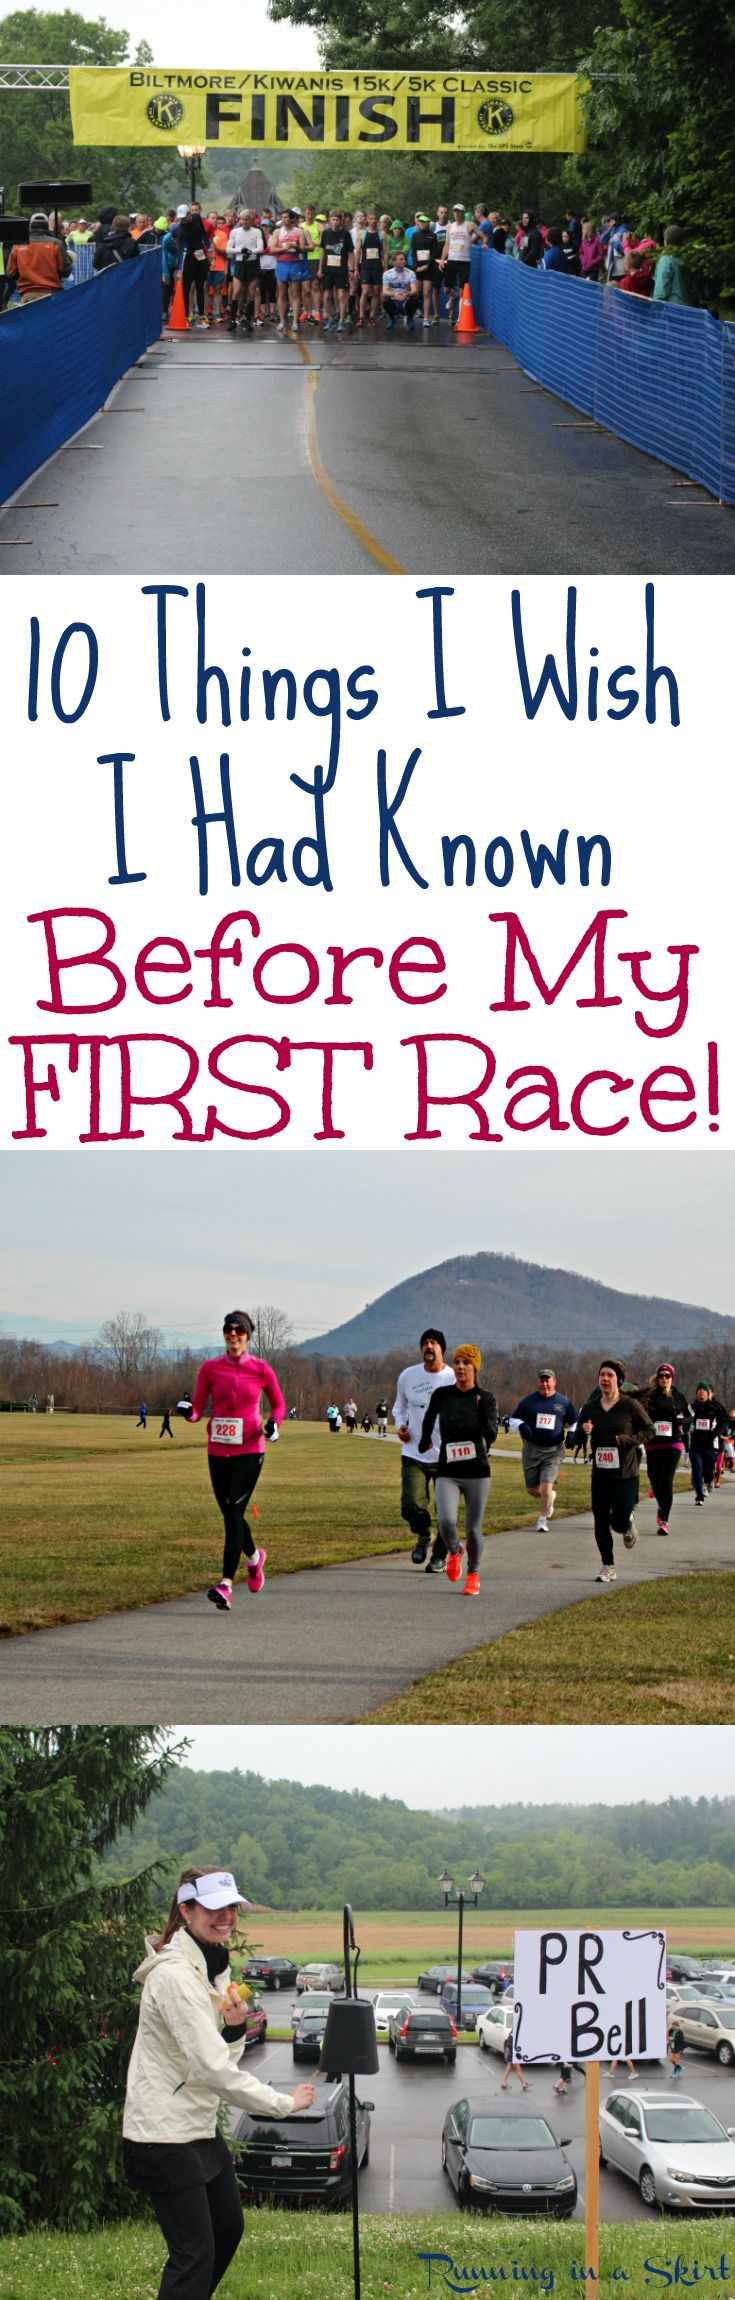 10 Things I Wish I Had Known Before My First Race!  Motivation for beginners or those who need some inspiration to get back on the road.  Great running, training and racing tips to inspire you to start to run your first 5K, 10K or half marathon race or remember the magic of your first miles. / Running in a Skirt